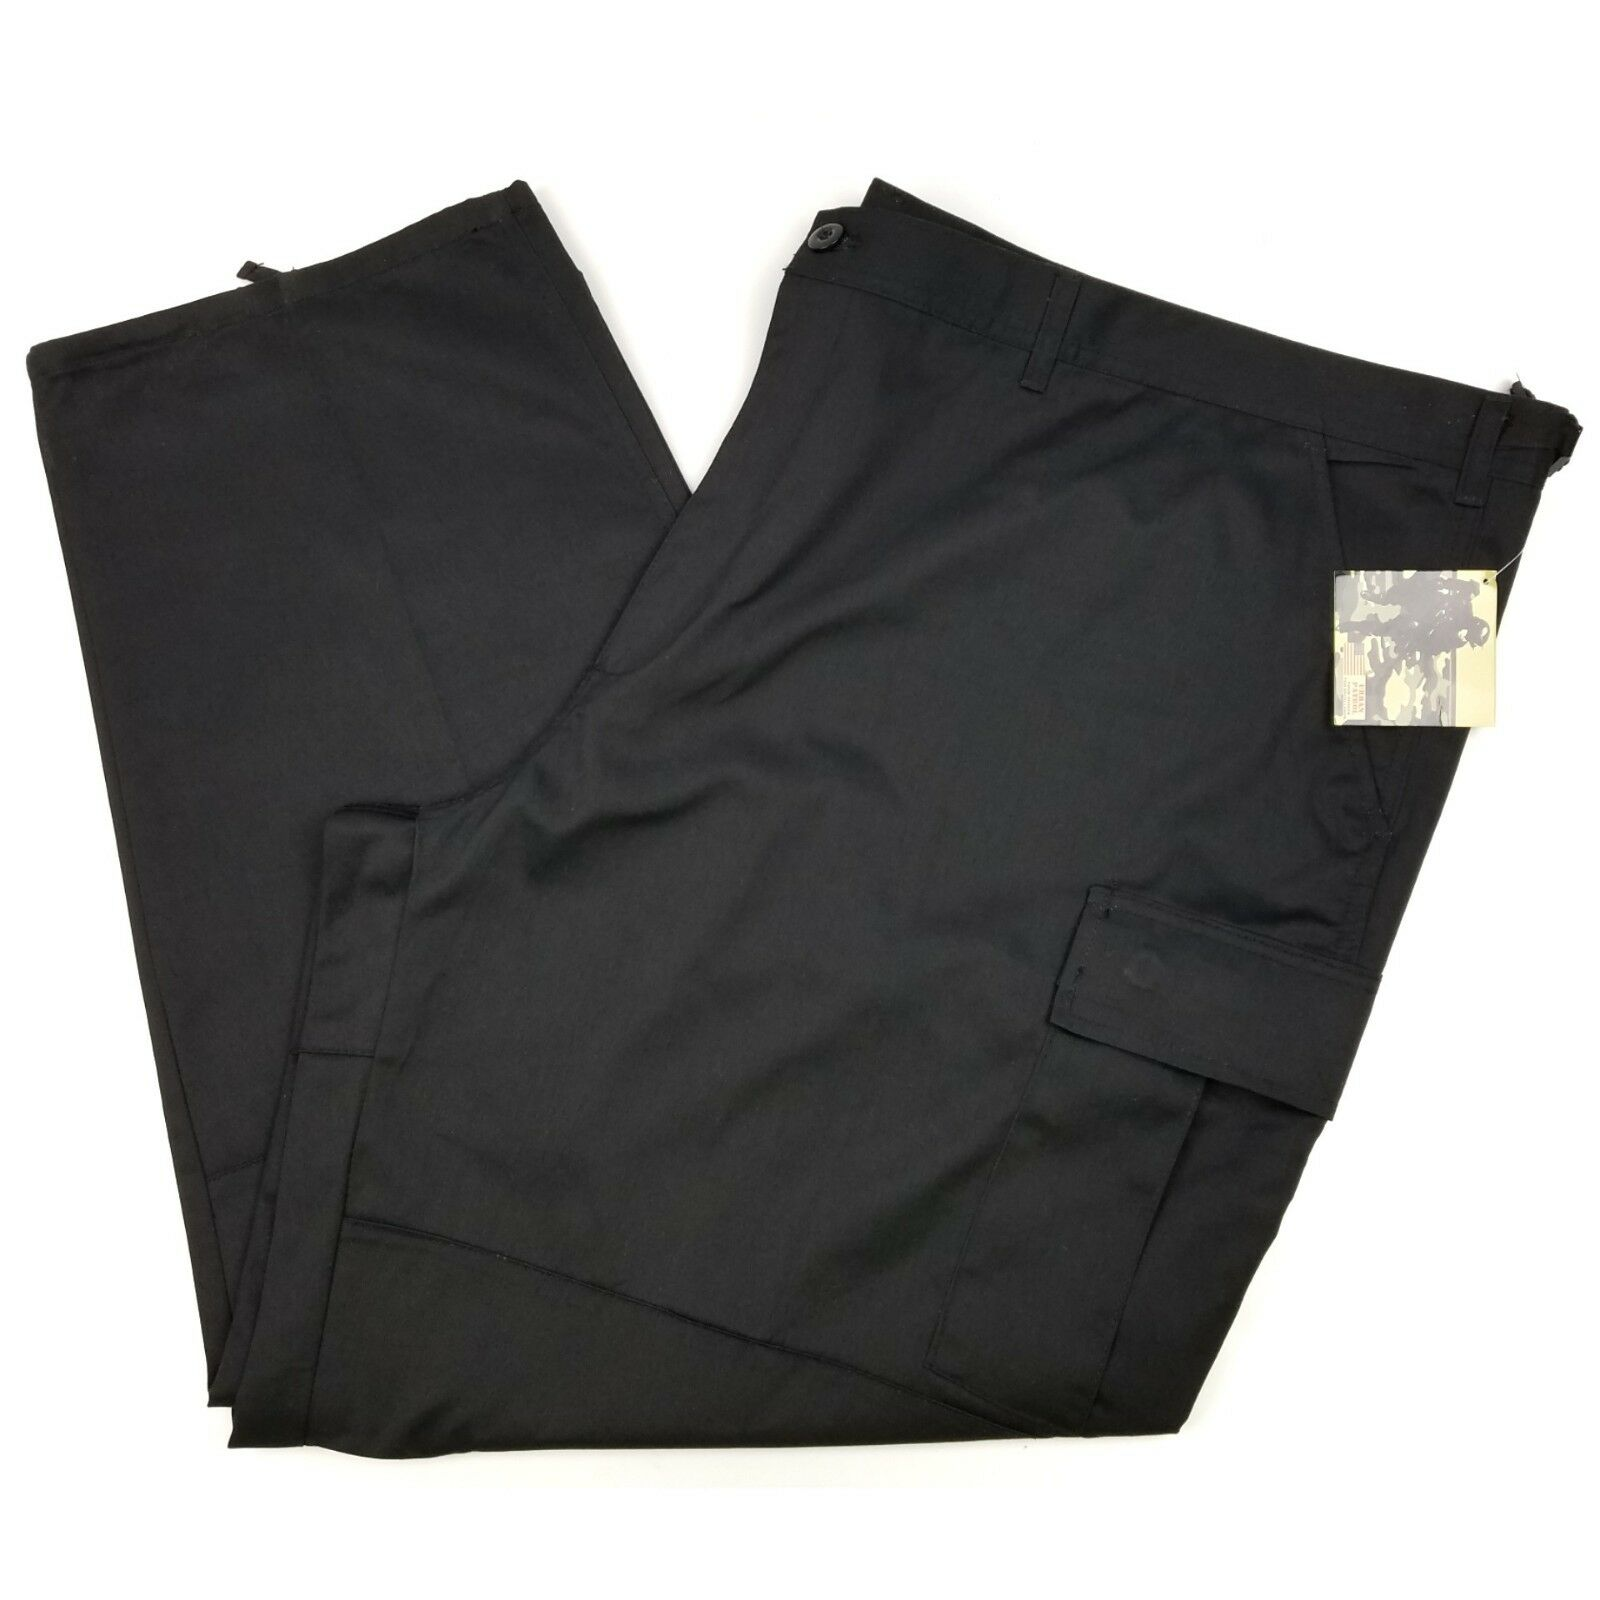 Urban Patrol Military Cargo Pants size-5XL (55-59) Mens Paintball Airsoft